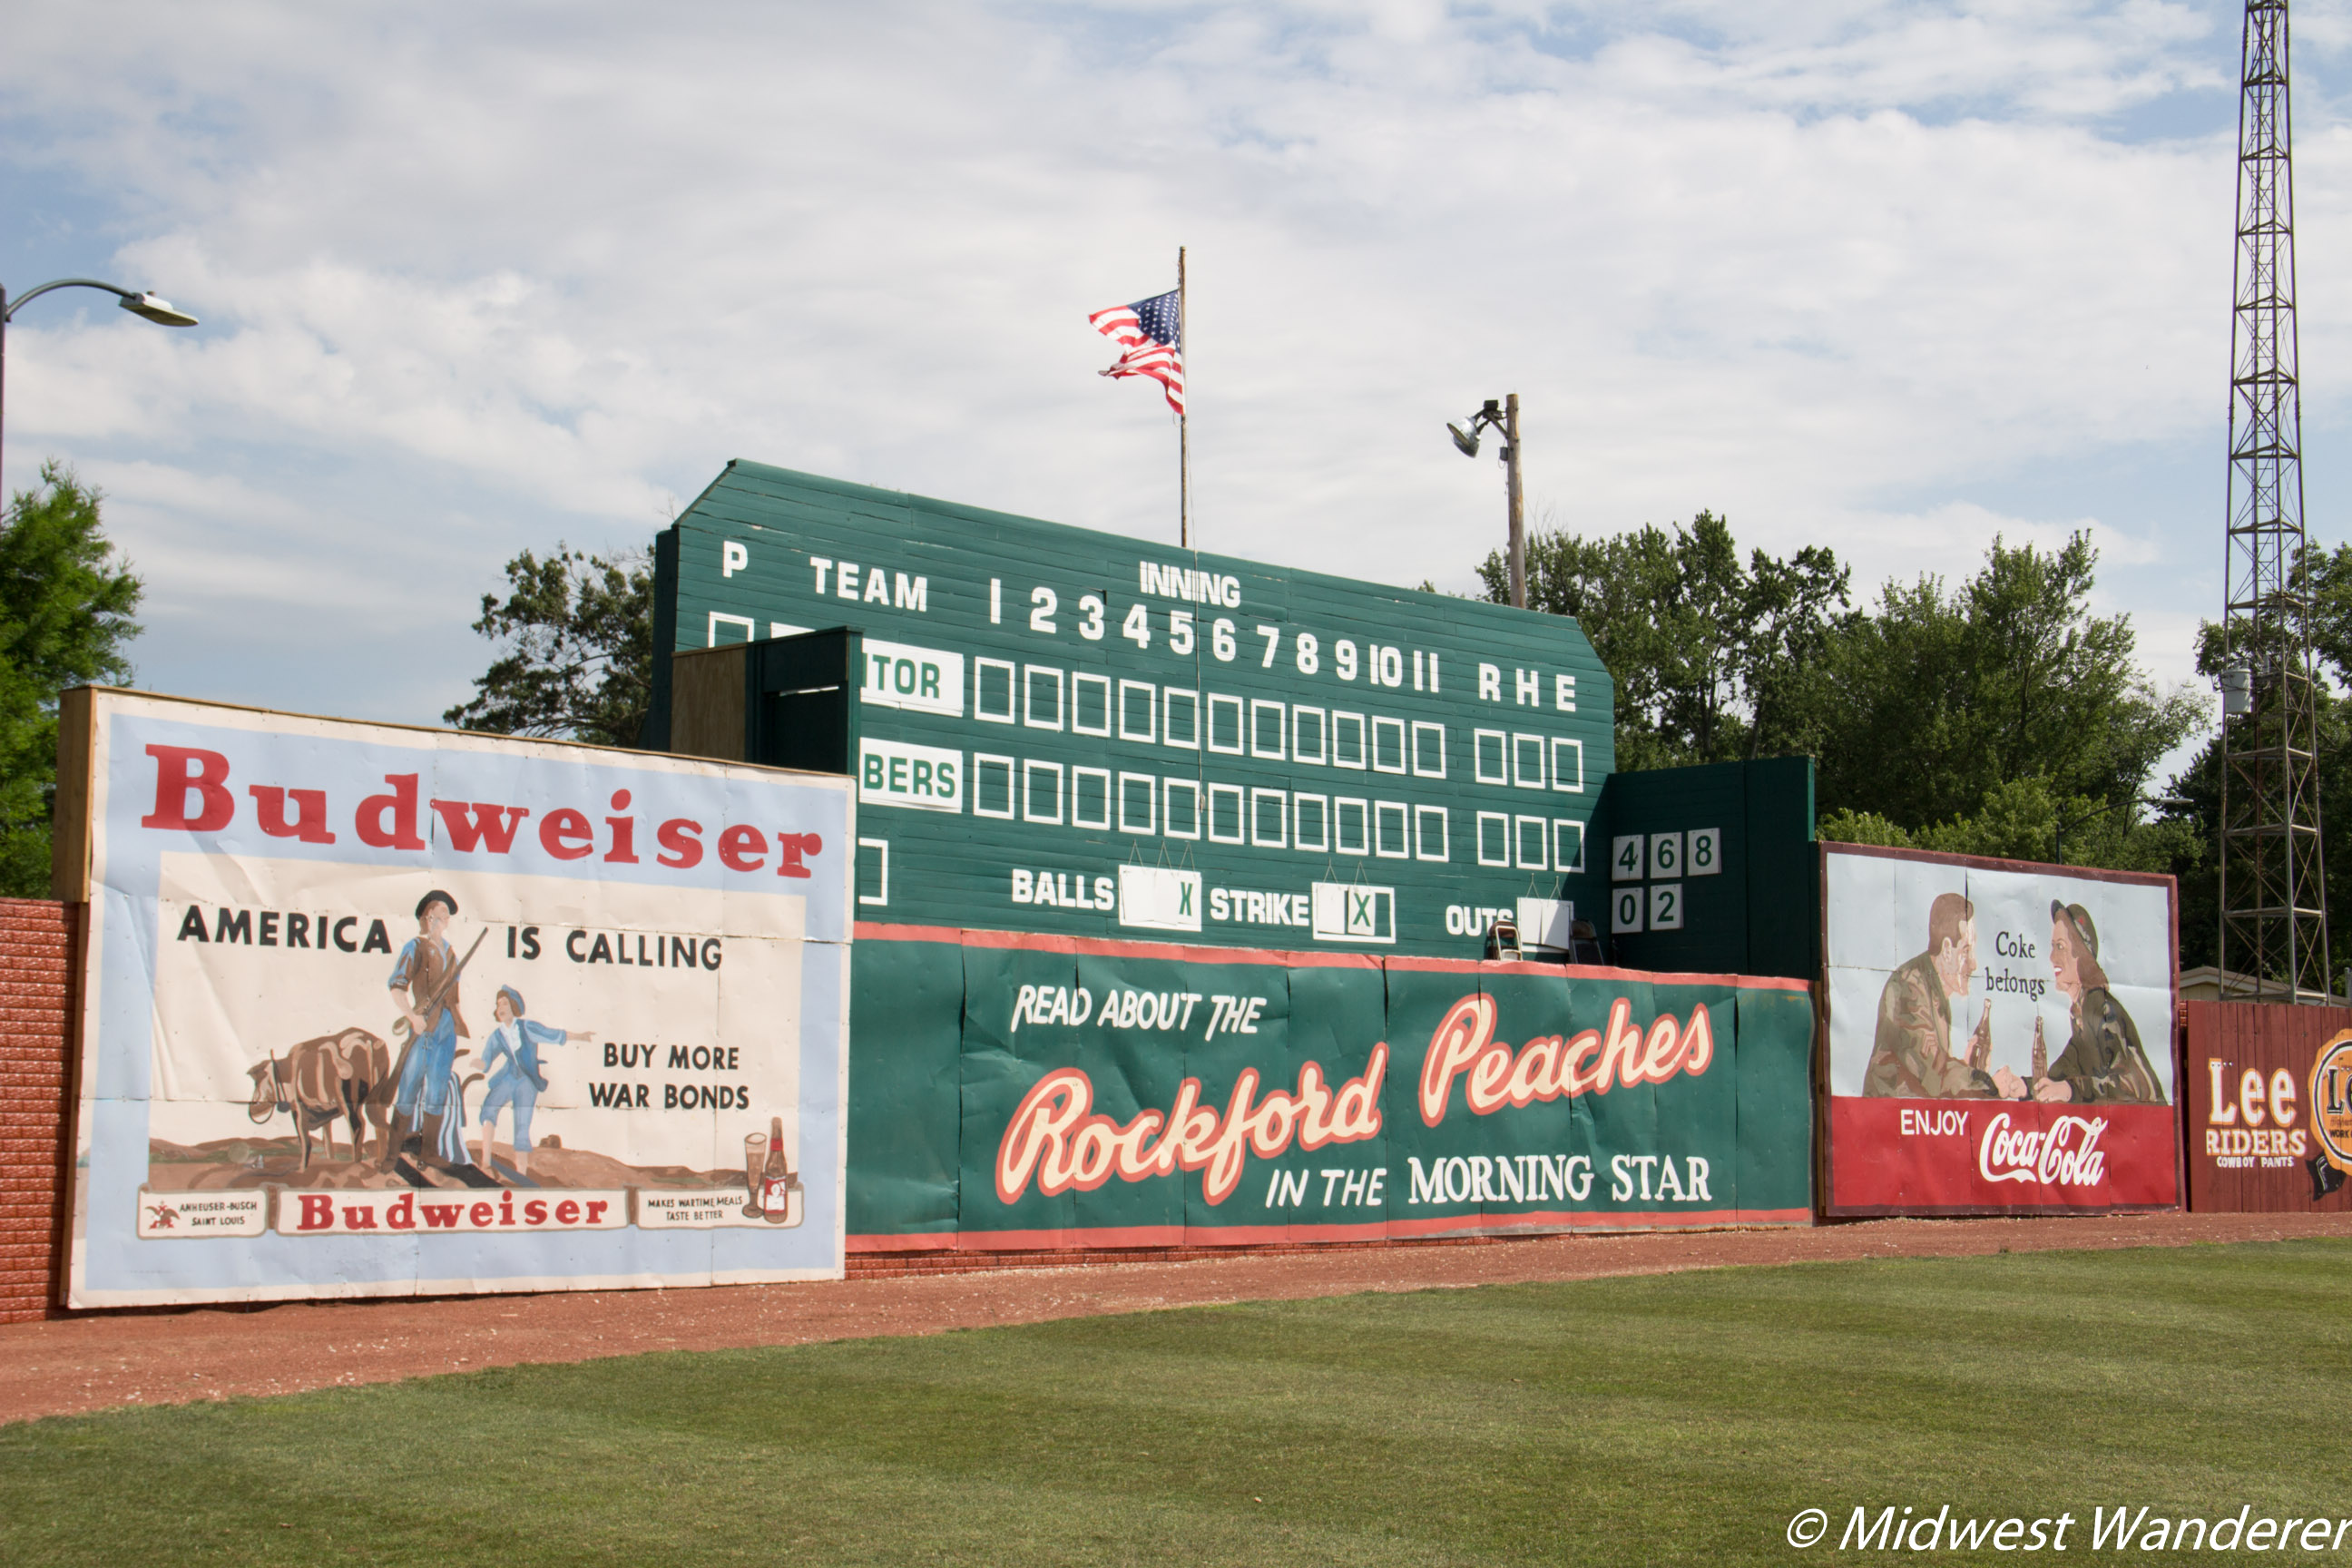 League Stadium scoreboard and vintage billboards